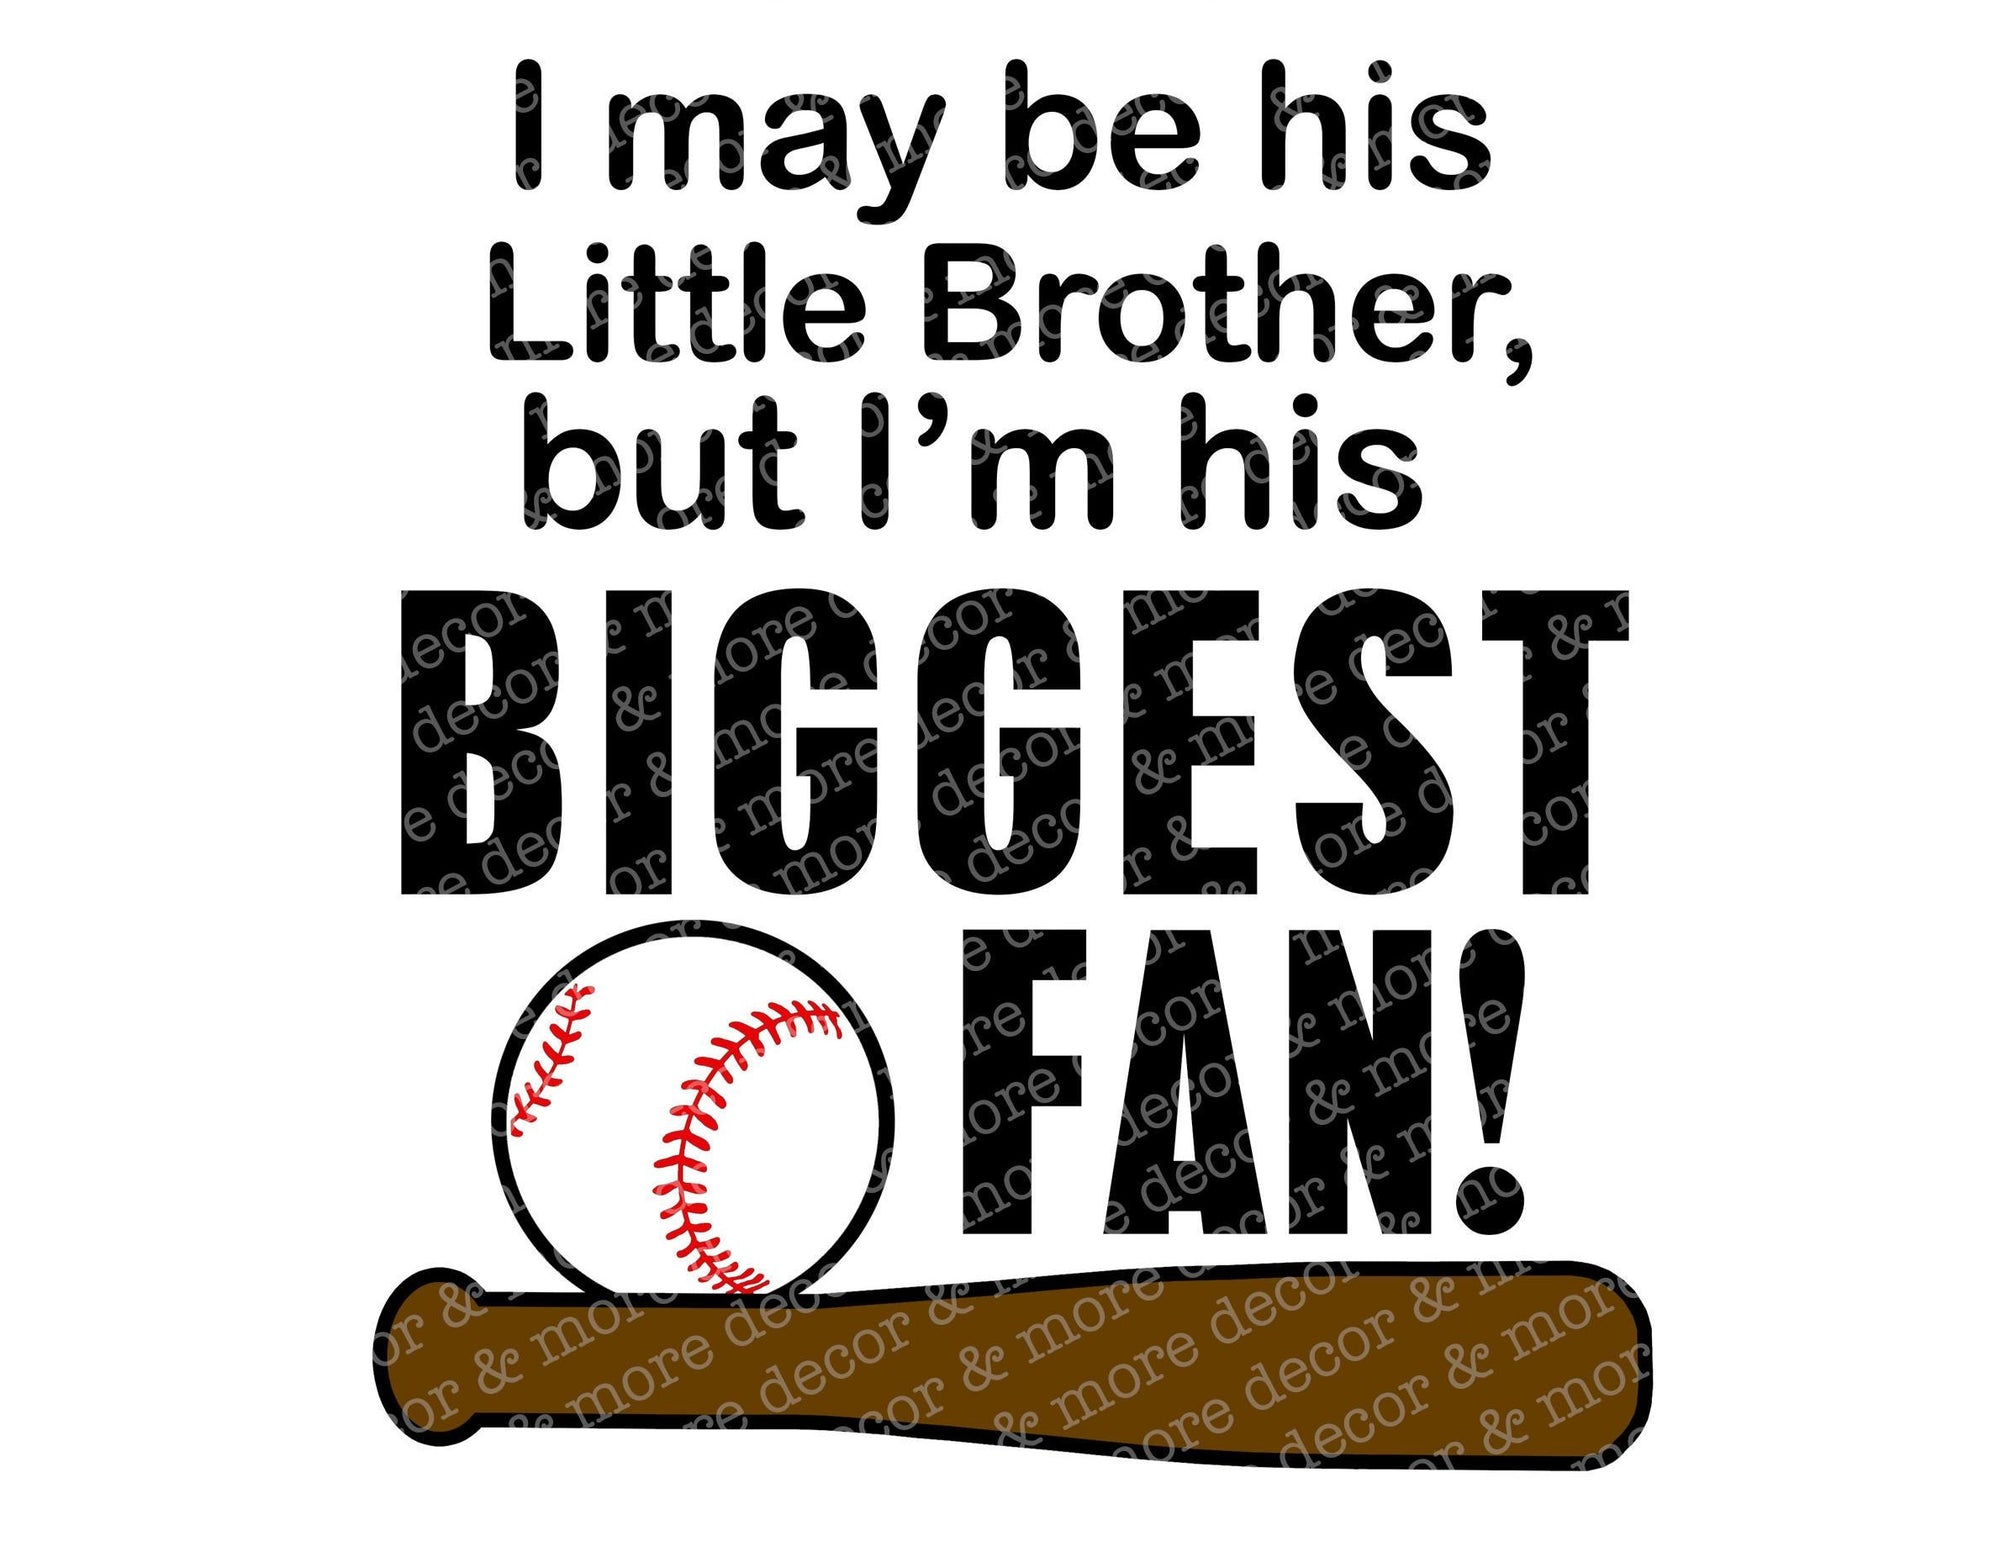 BASEBALL BROTHER SVG. Baseball Brother Svg file. He'll be the cutest Baseball Brother at the game in a baseball brother shirt with this Svg!